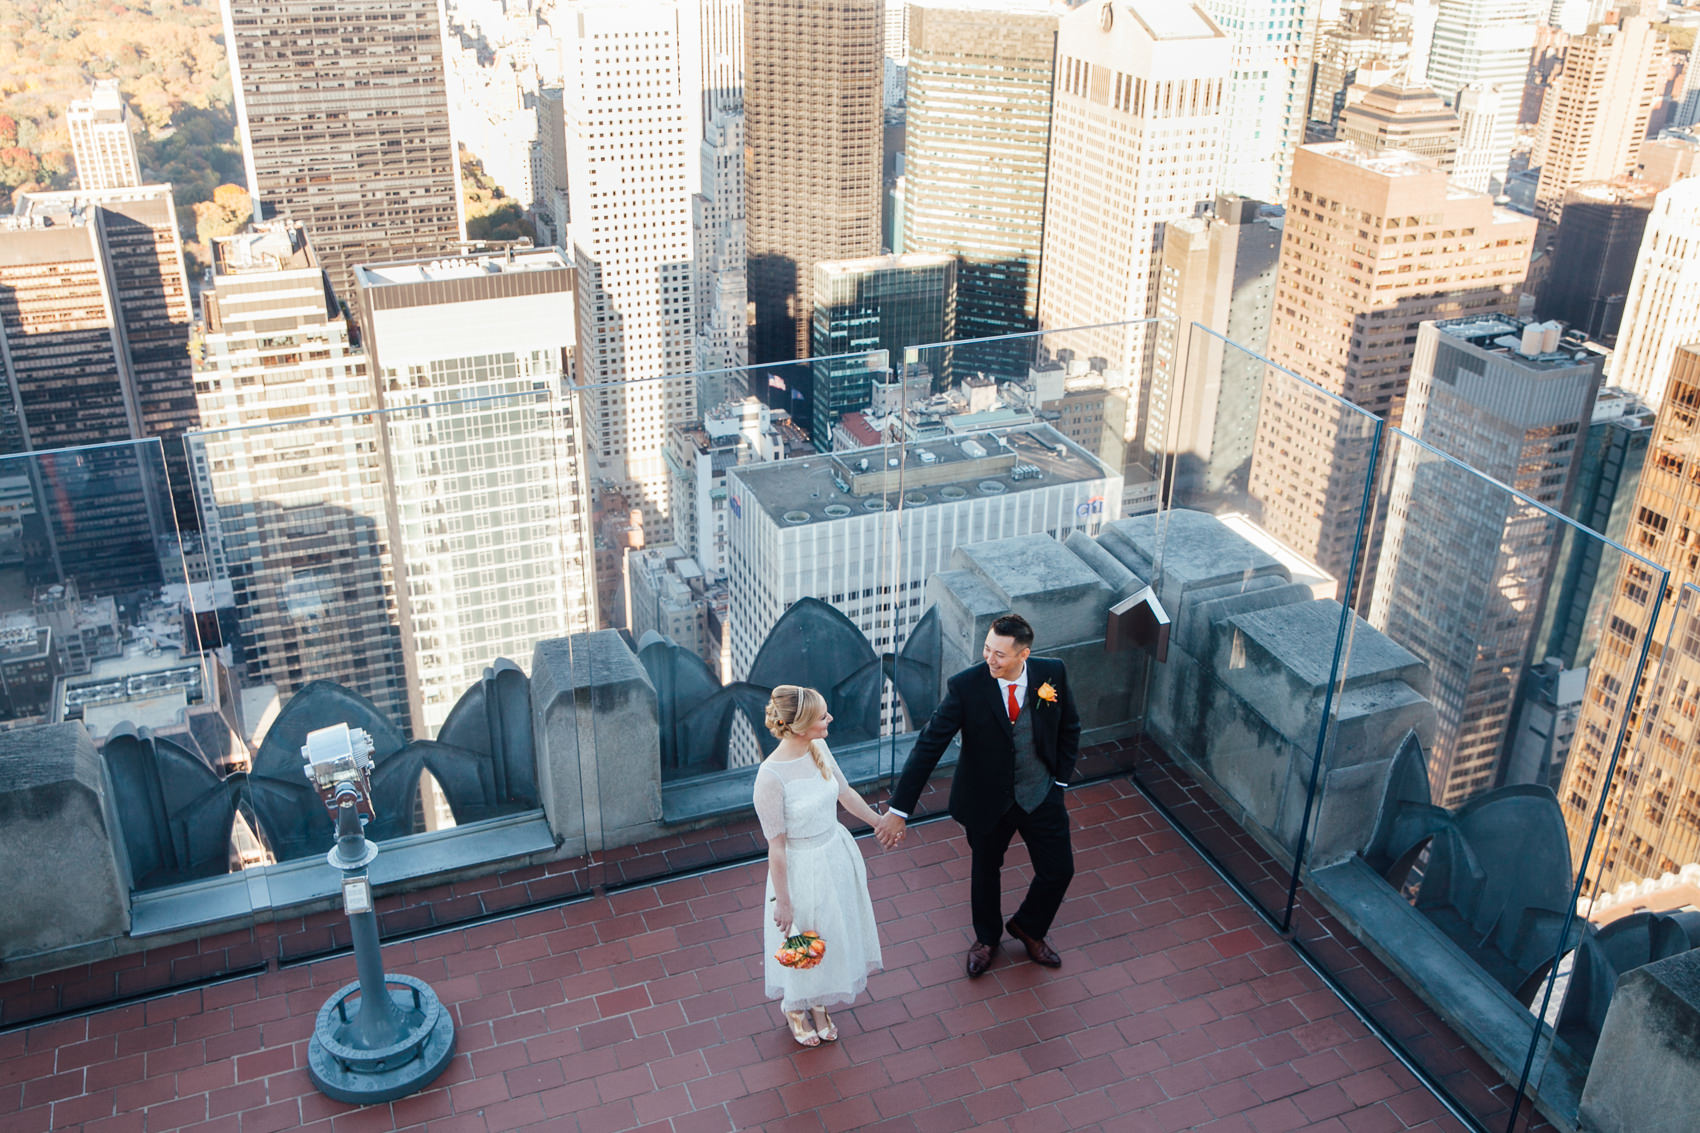 NYC-wedding-photos-by-Tanya-Isaeva-15.jpg